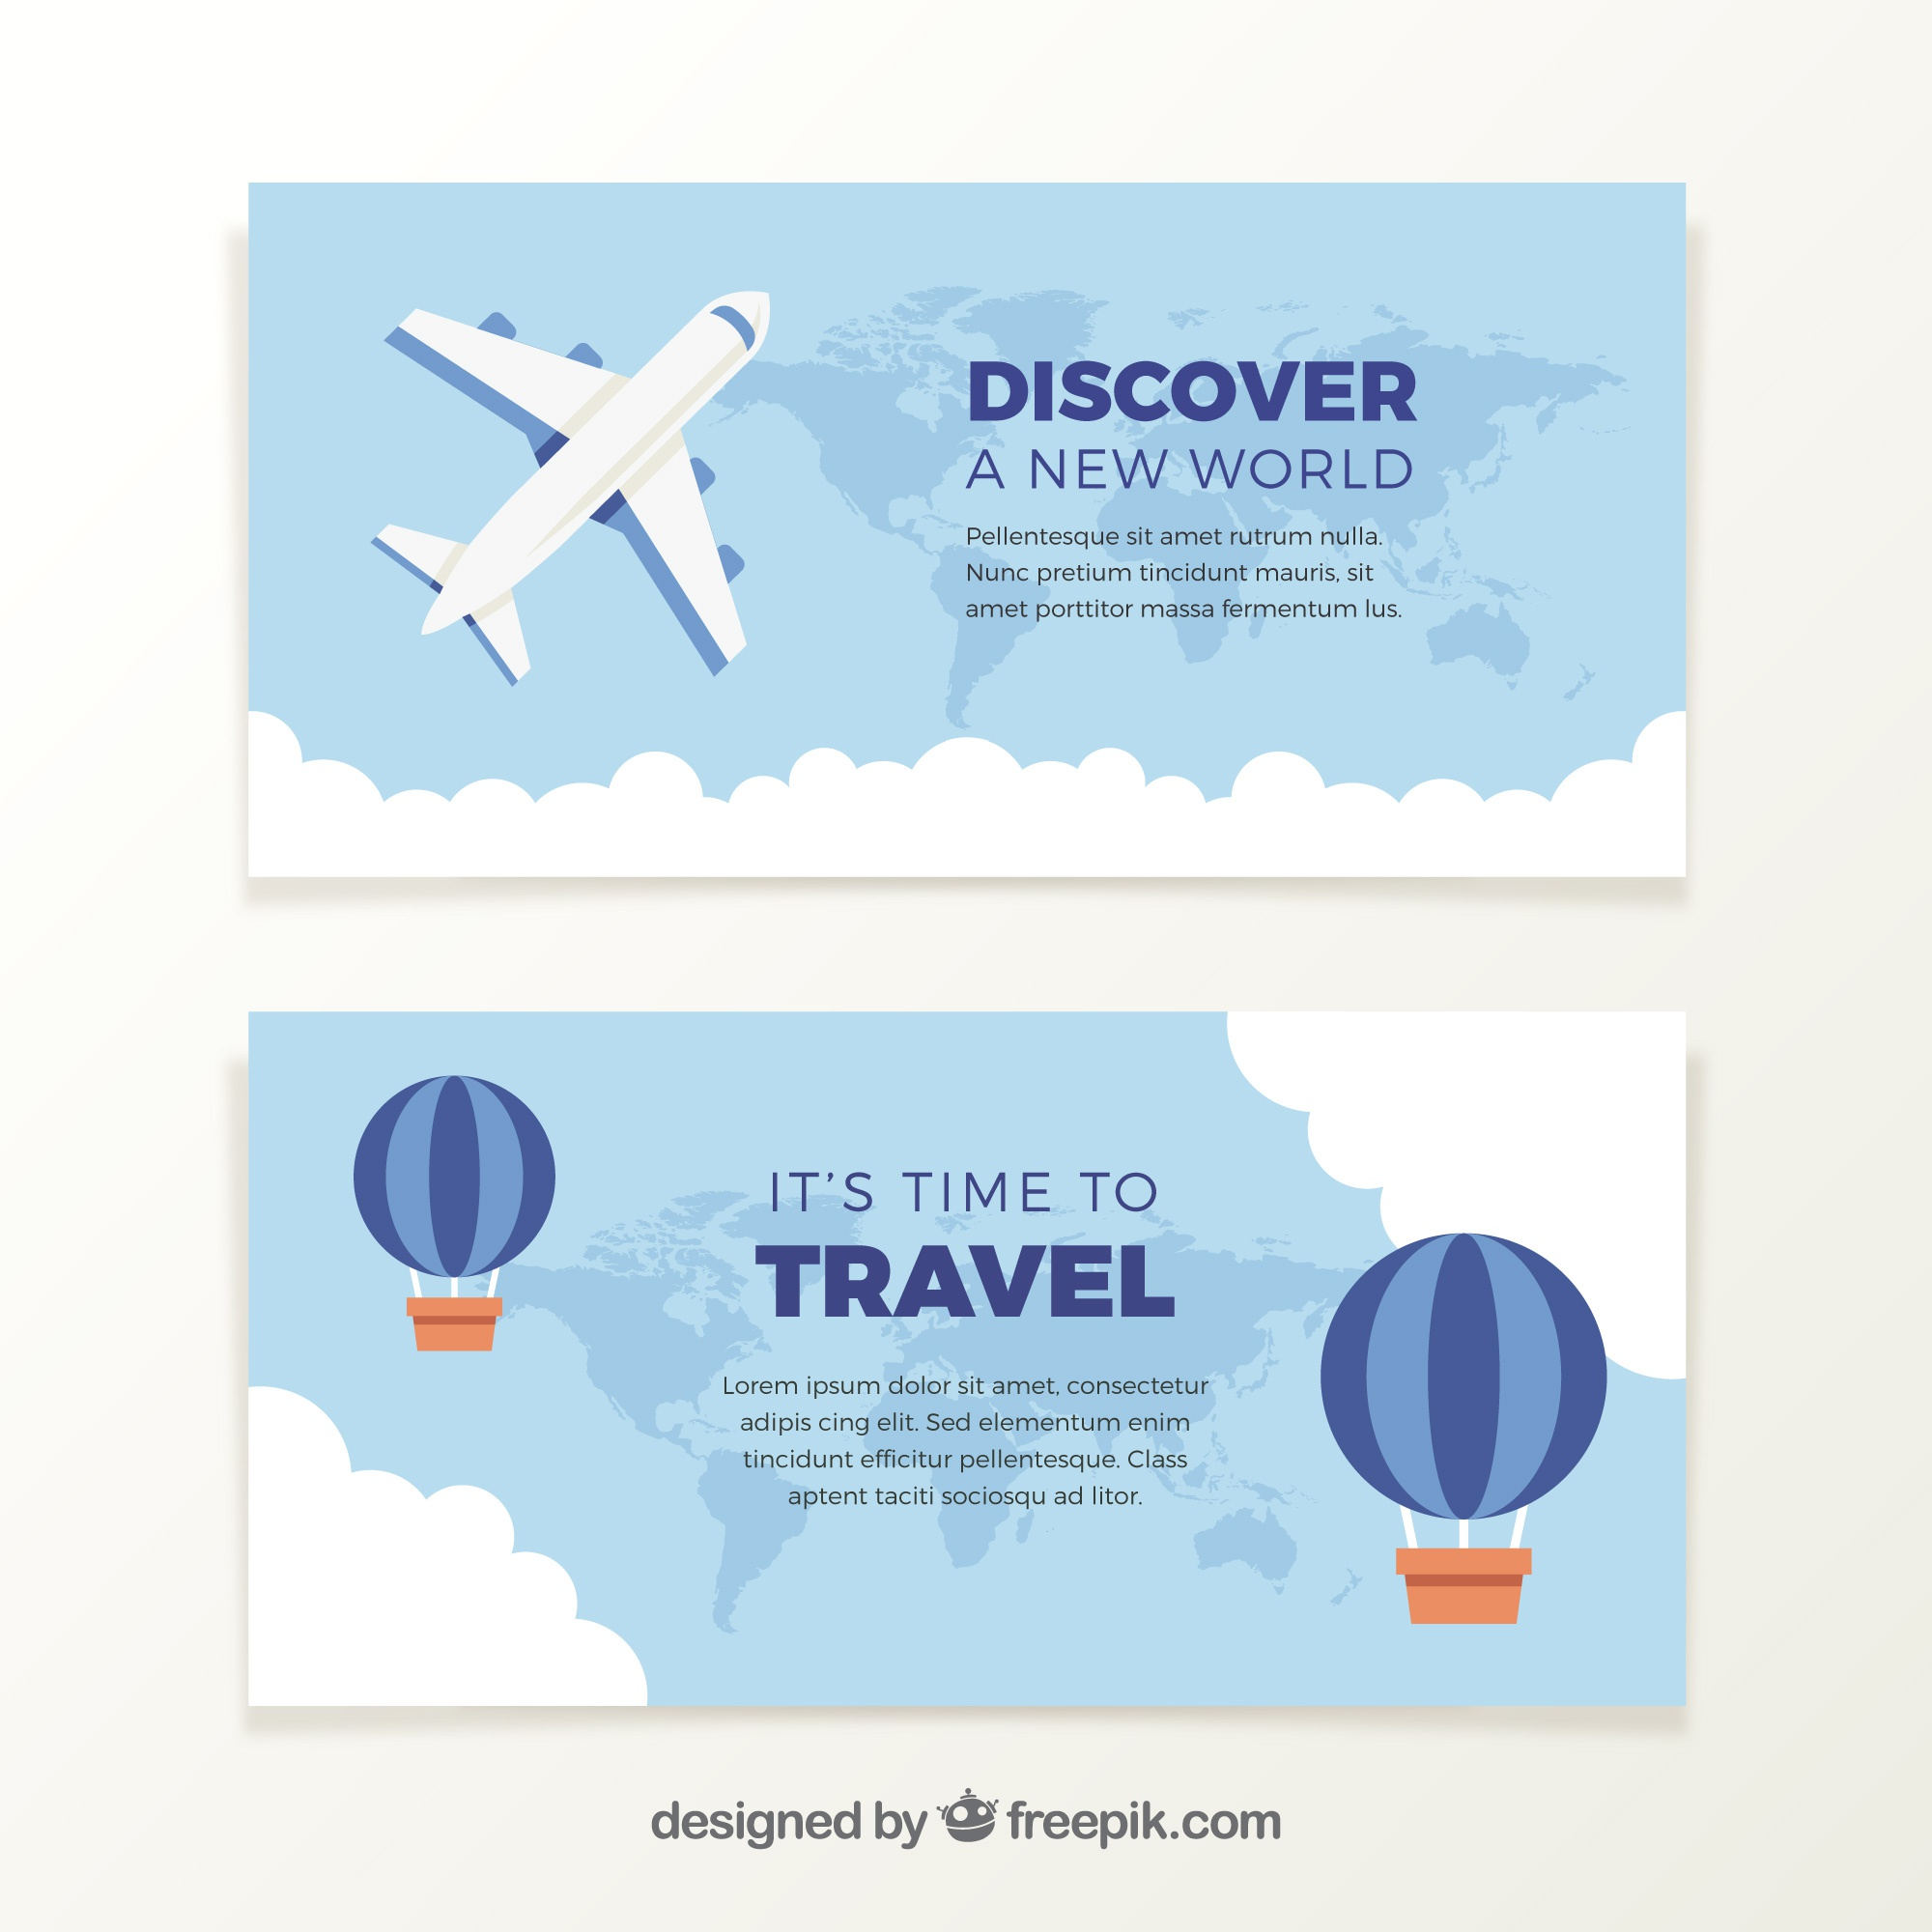 Airplane banners and balloons